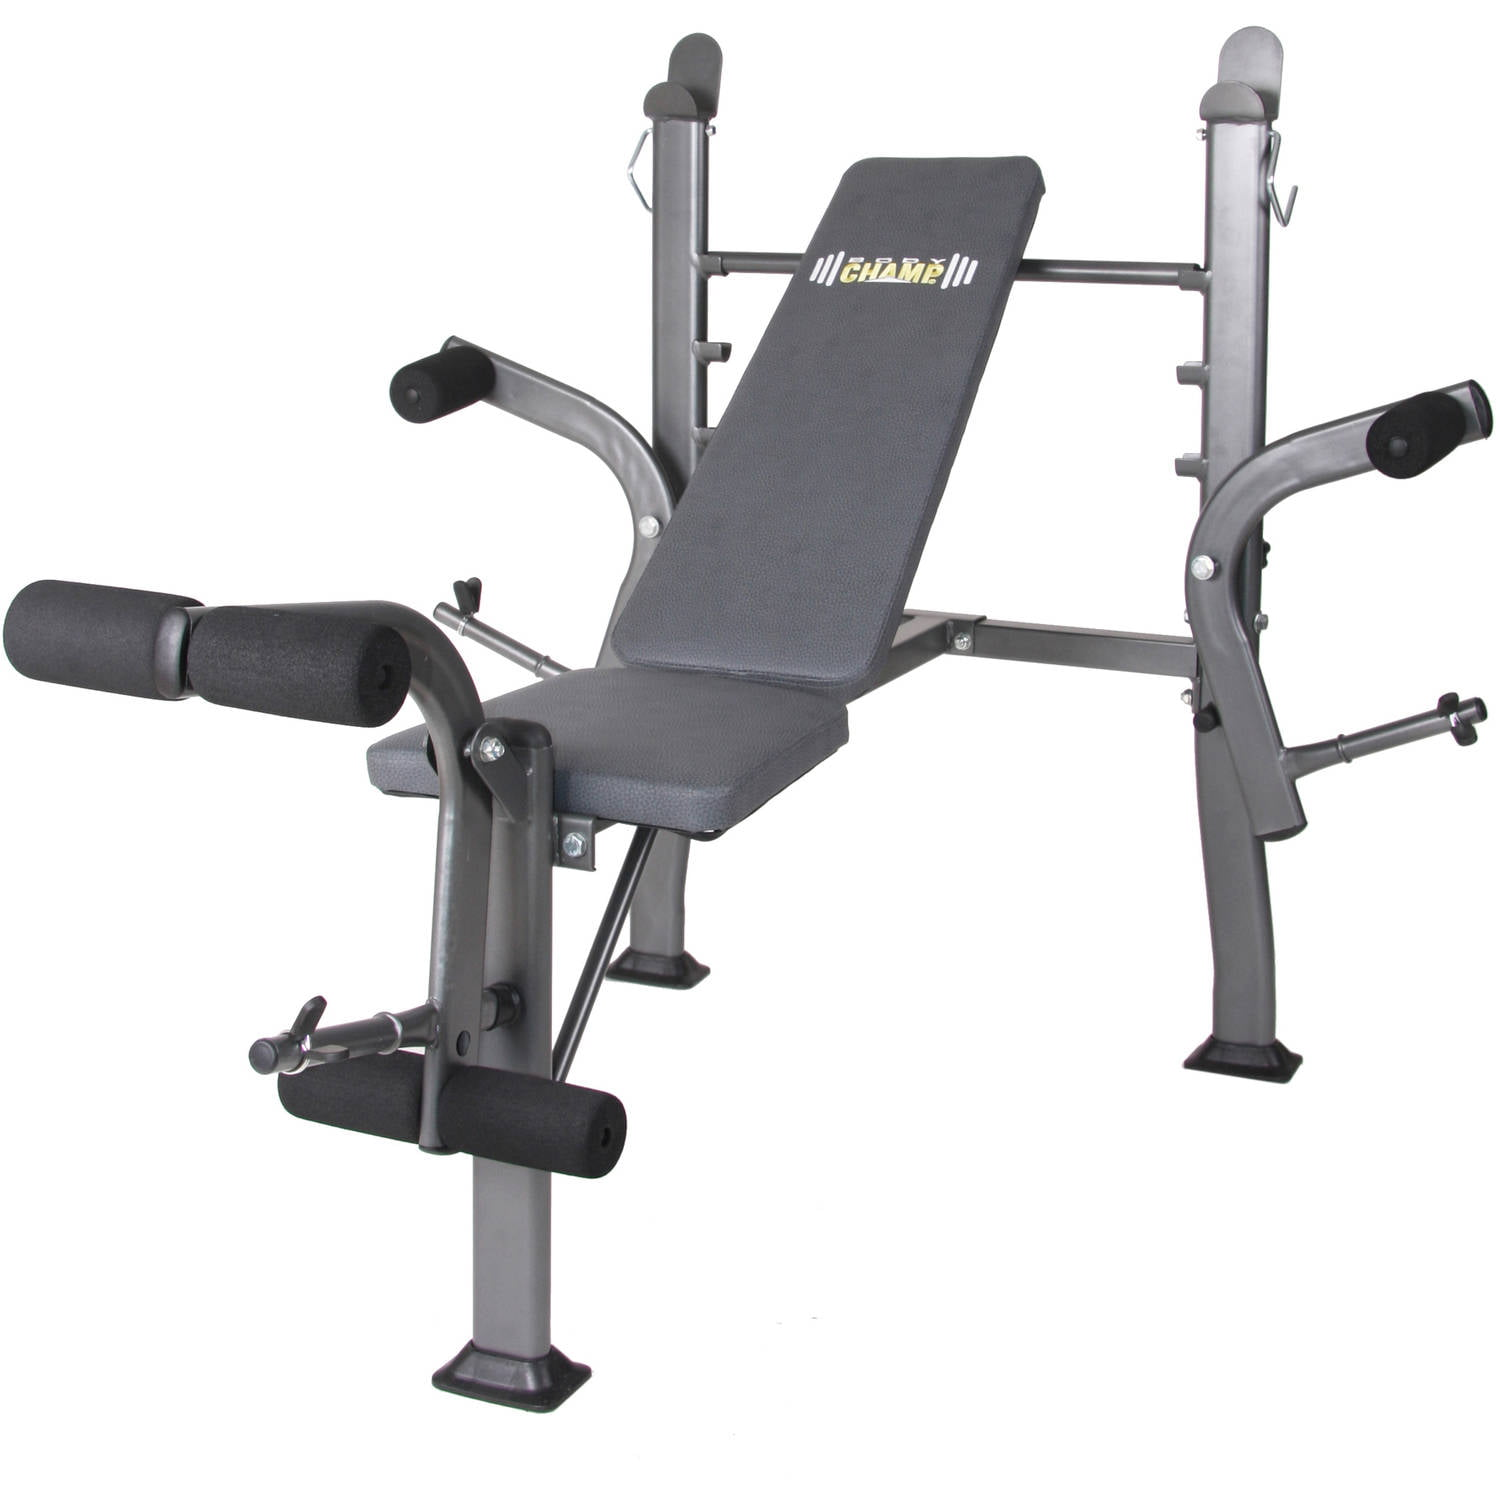 fitness powerhouse utility dsc weight bodymax bench with shop at weights fid now benches